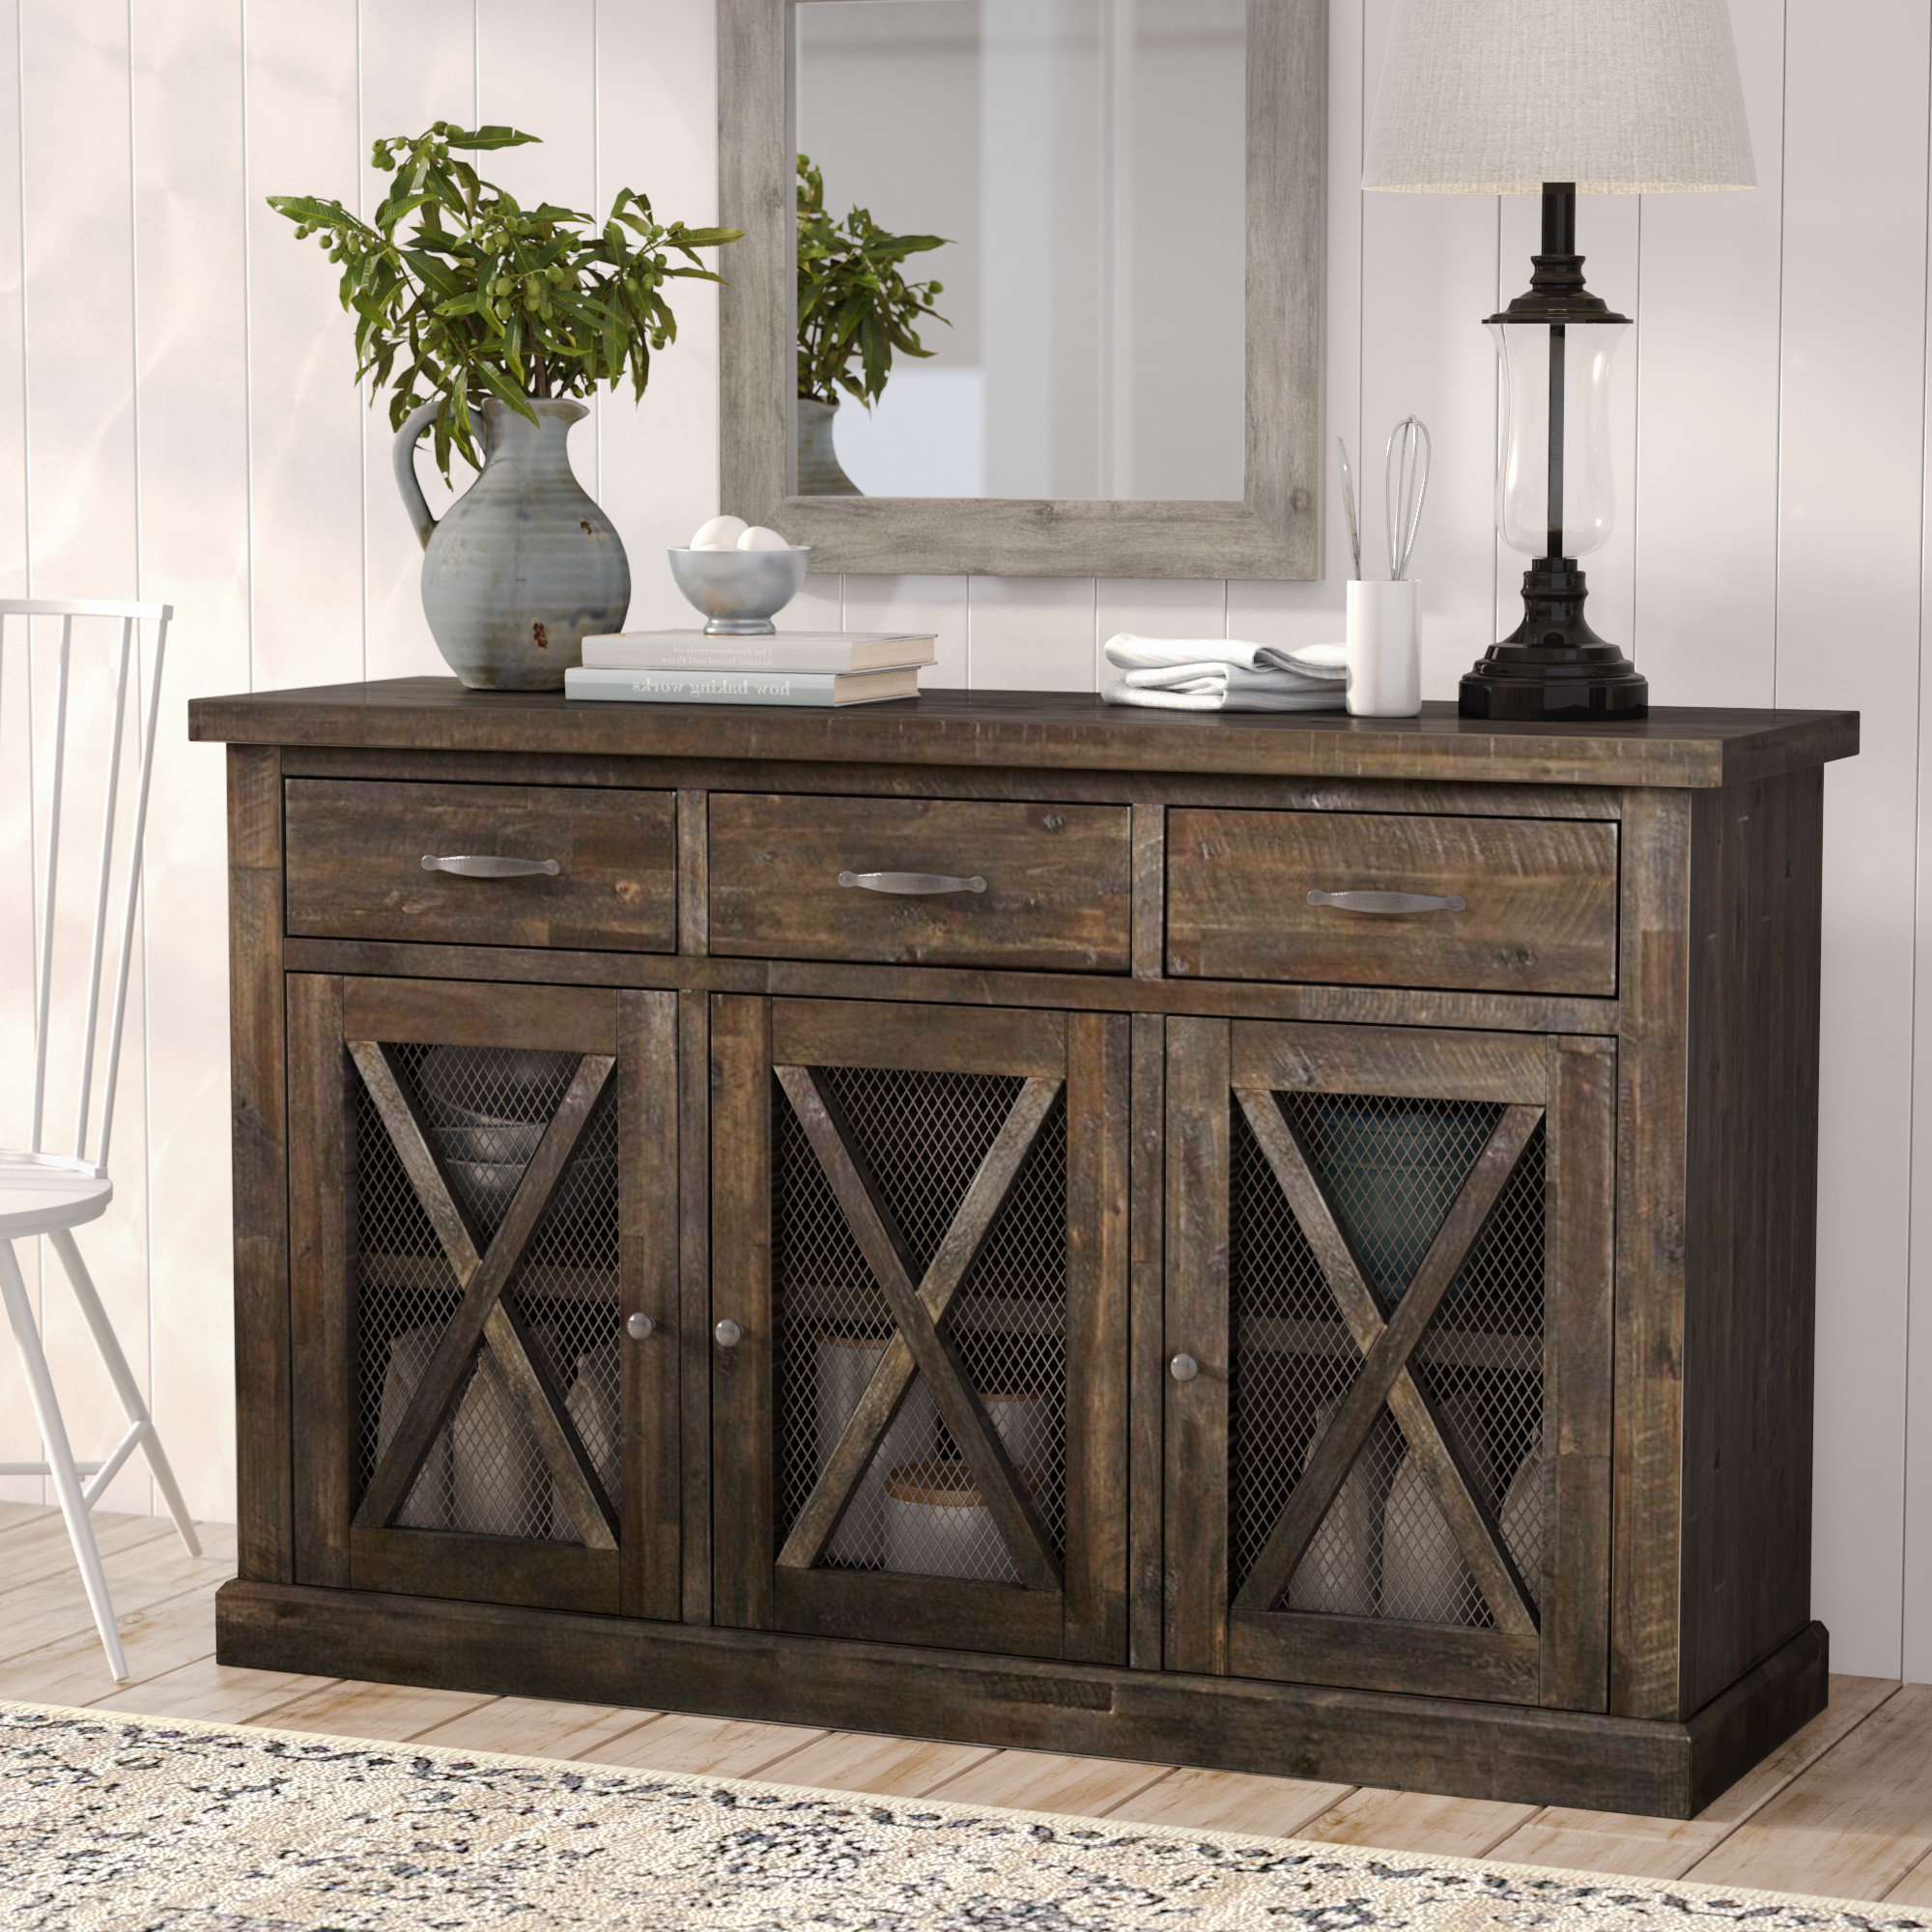 Weathered Grey Buffet | Wayfair With Regard To Contemporary Distressed Grey Buffets (View 15 of 20)